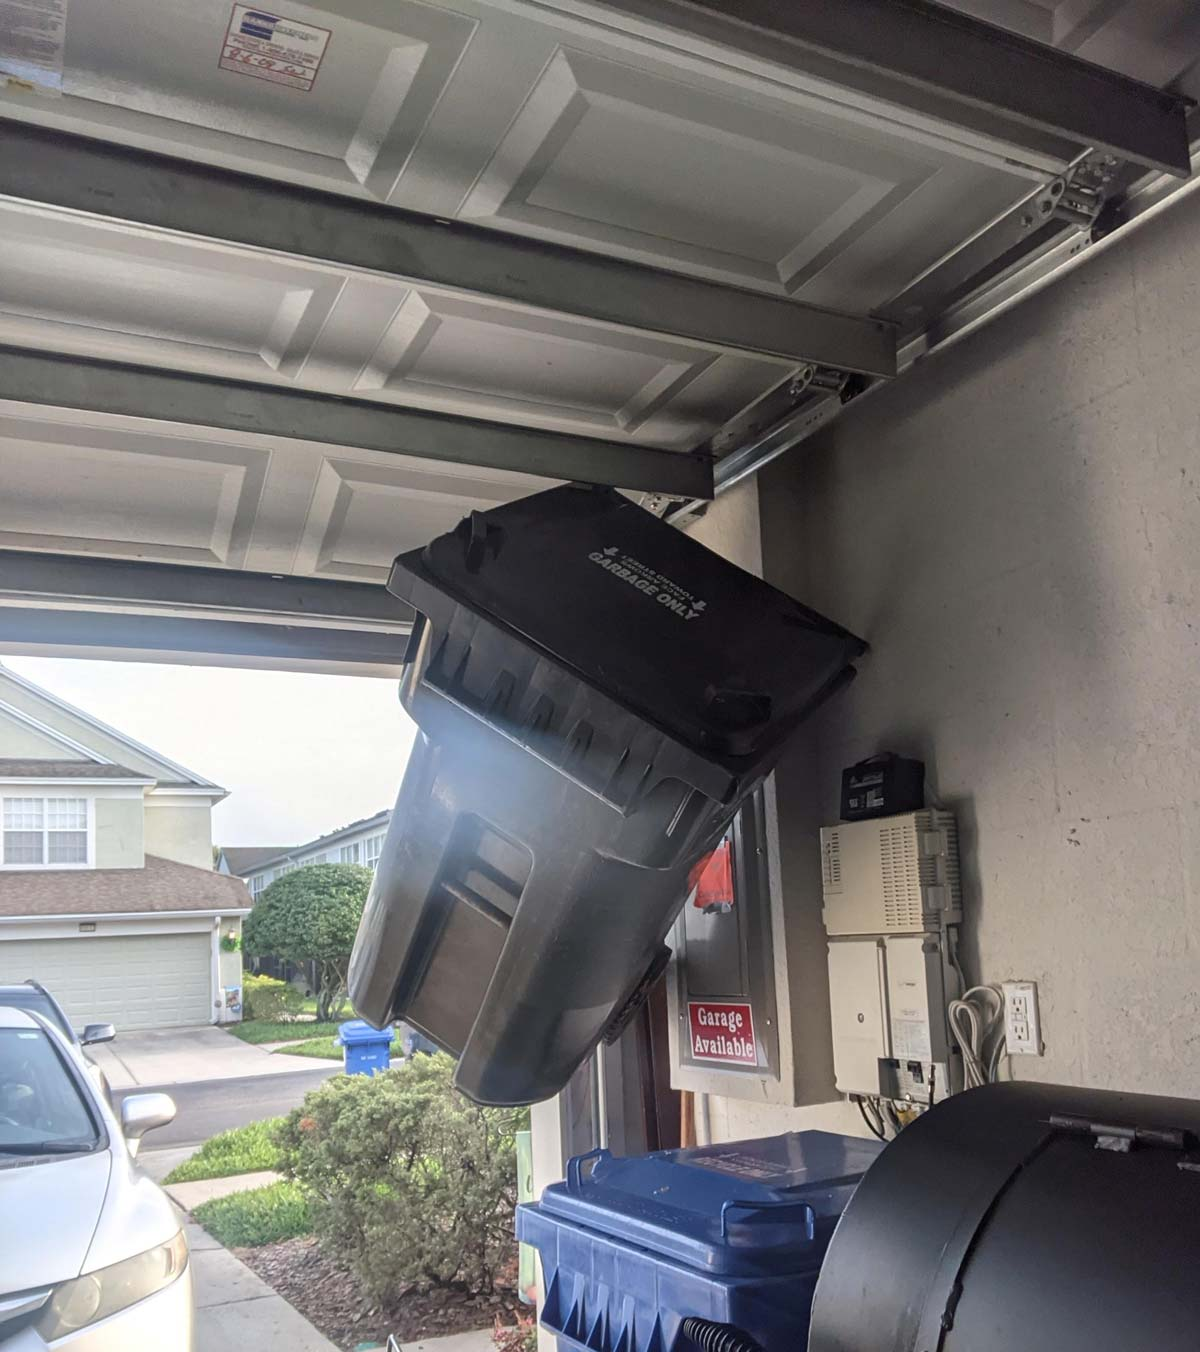 Opened the garage to take out the trash this morning